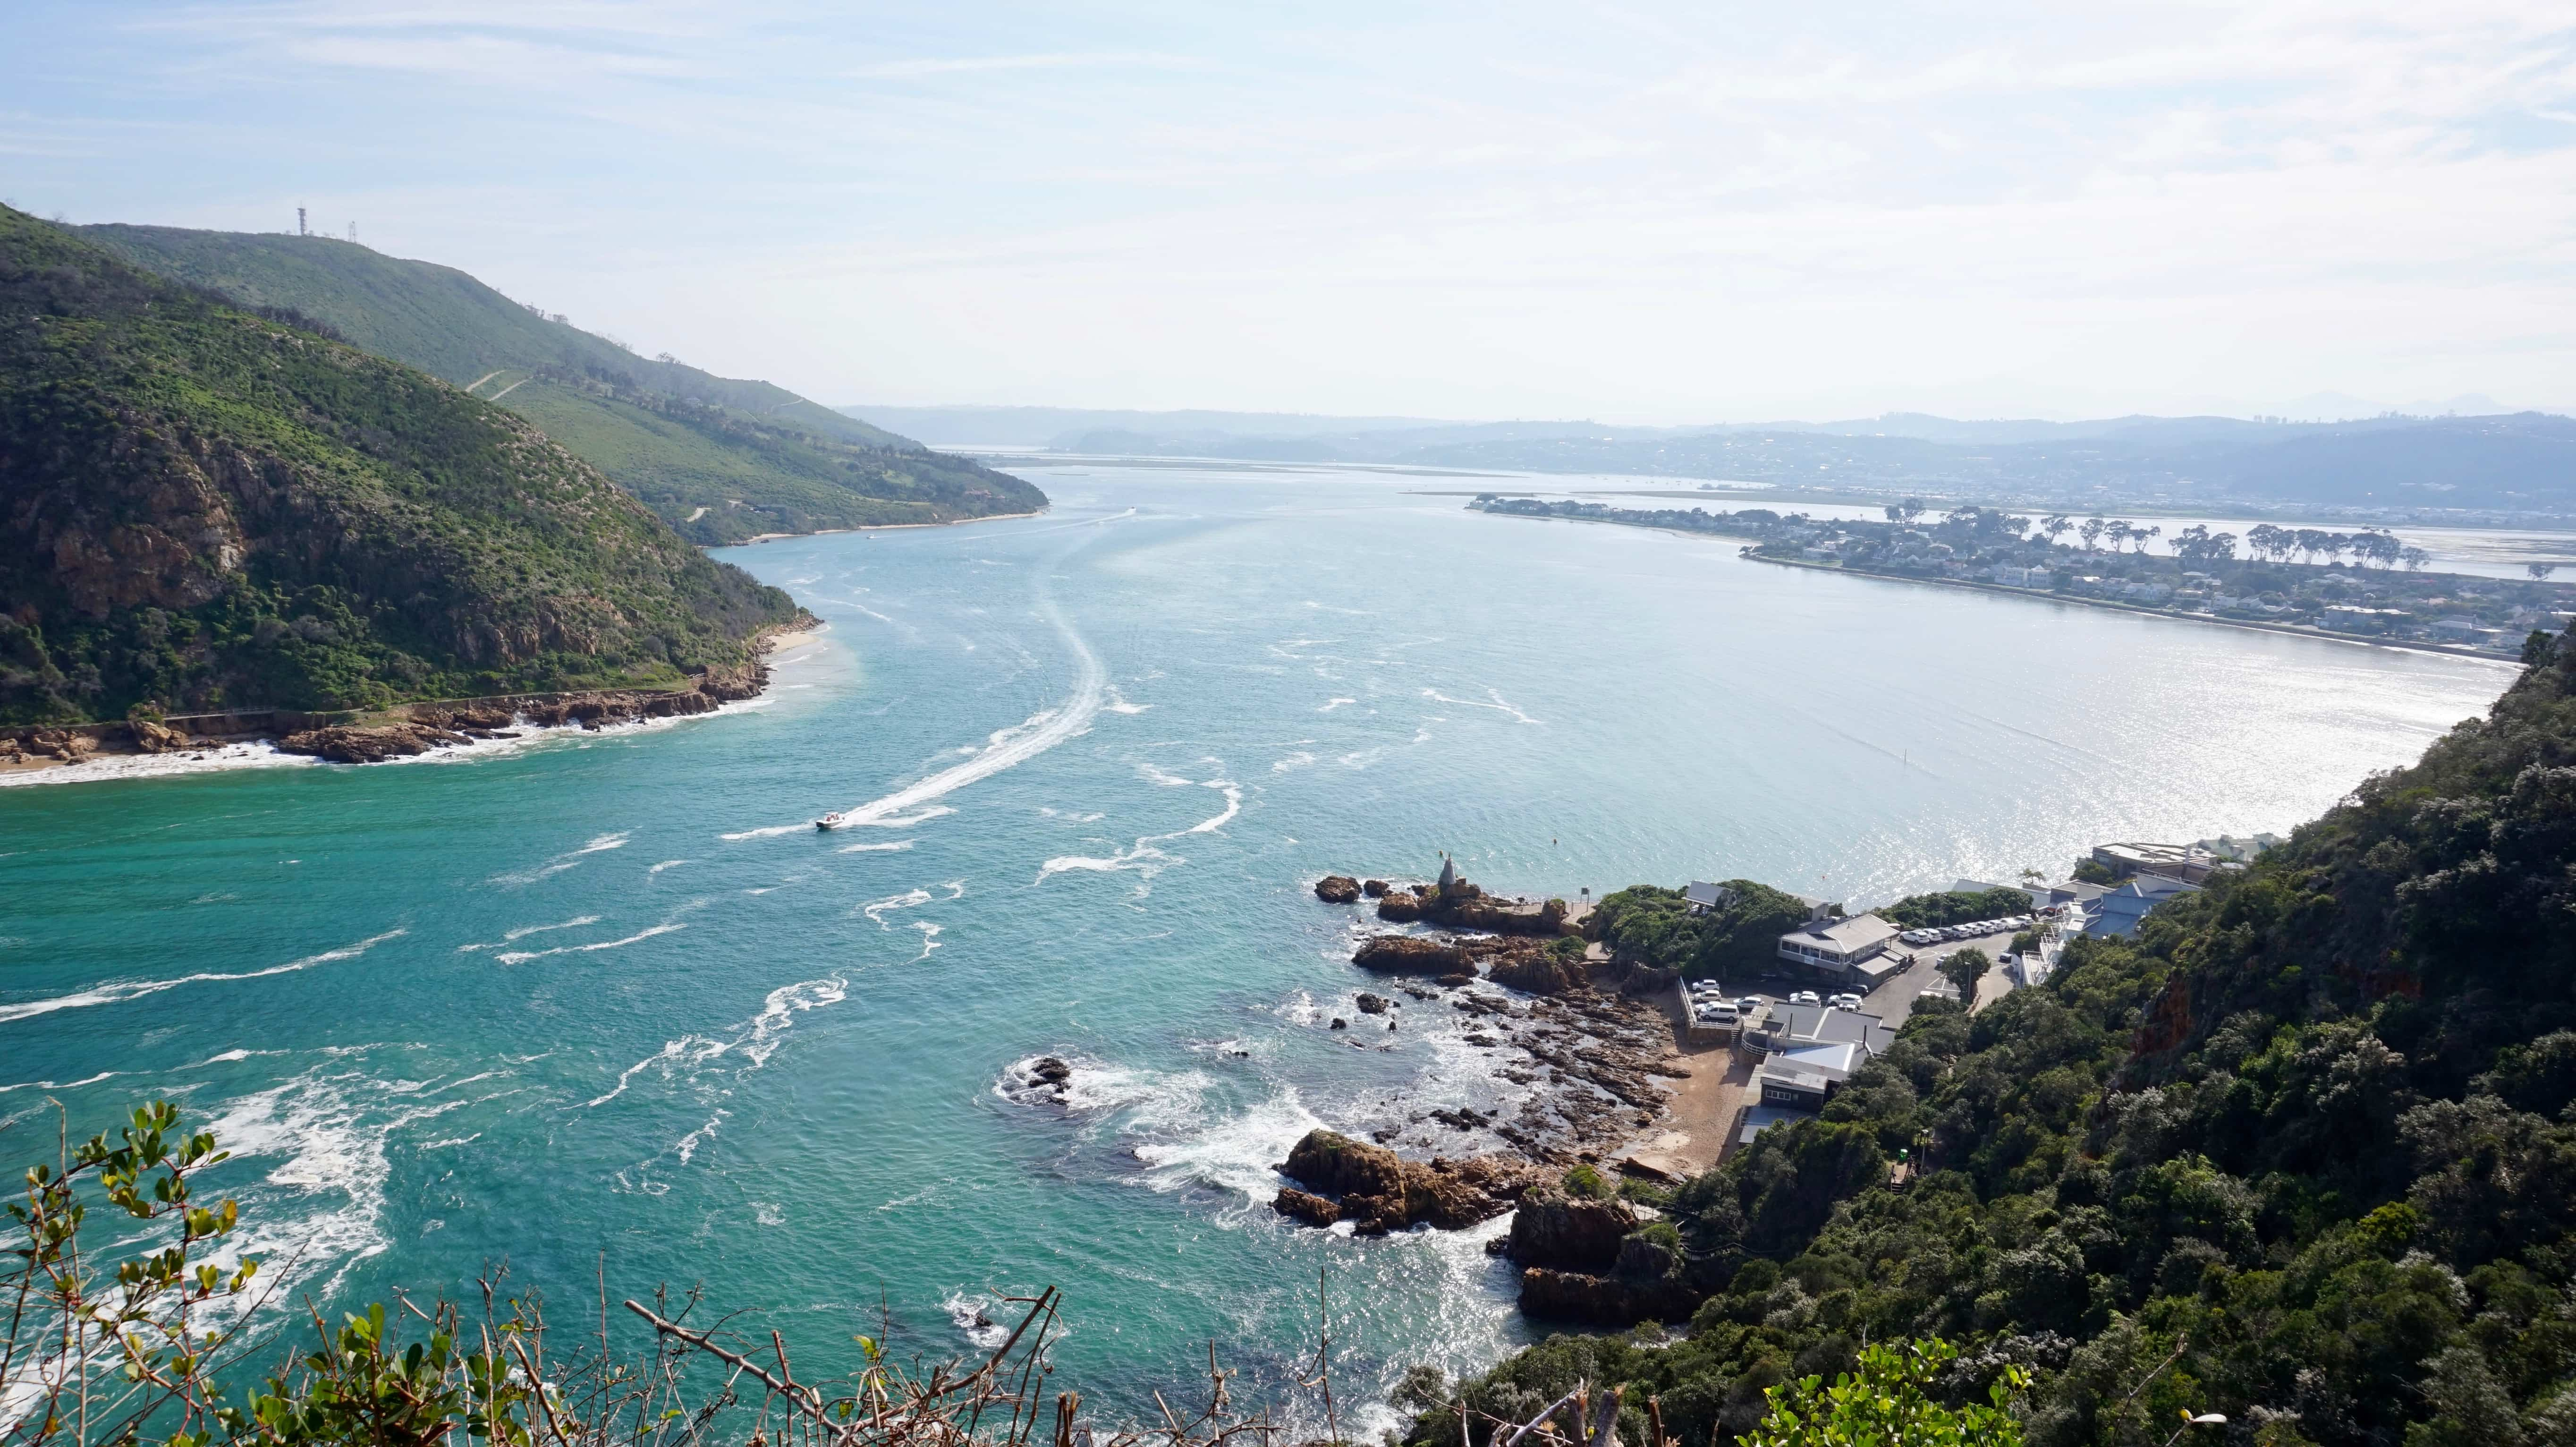 View from East Head over the sea in Knysna, South Africa